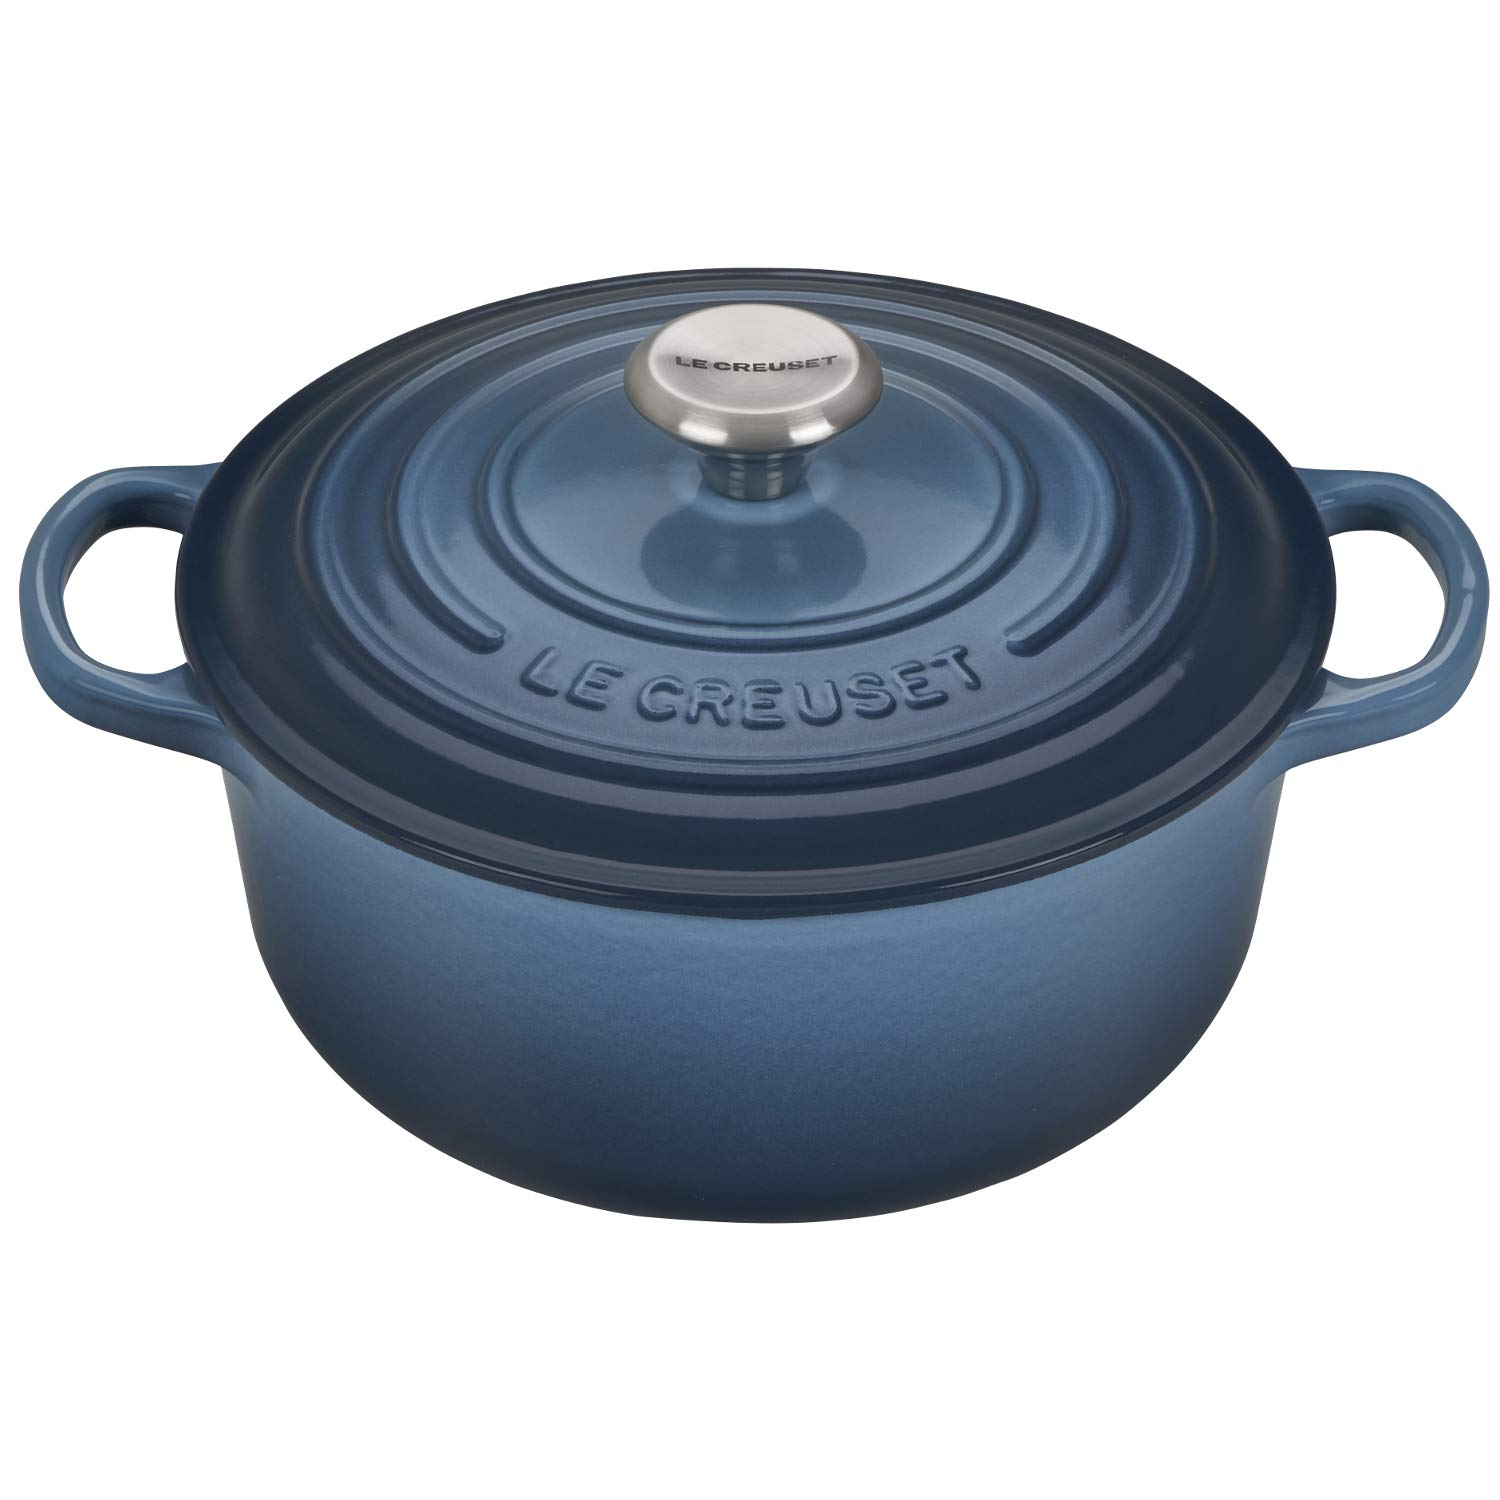 "Le Creuset of America LS2501-206MSS Enameled Dutch Oven, 2.75"", Marine"